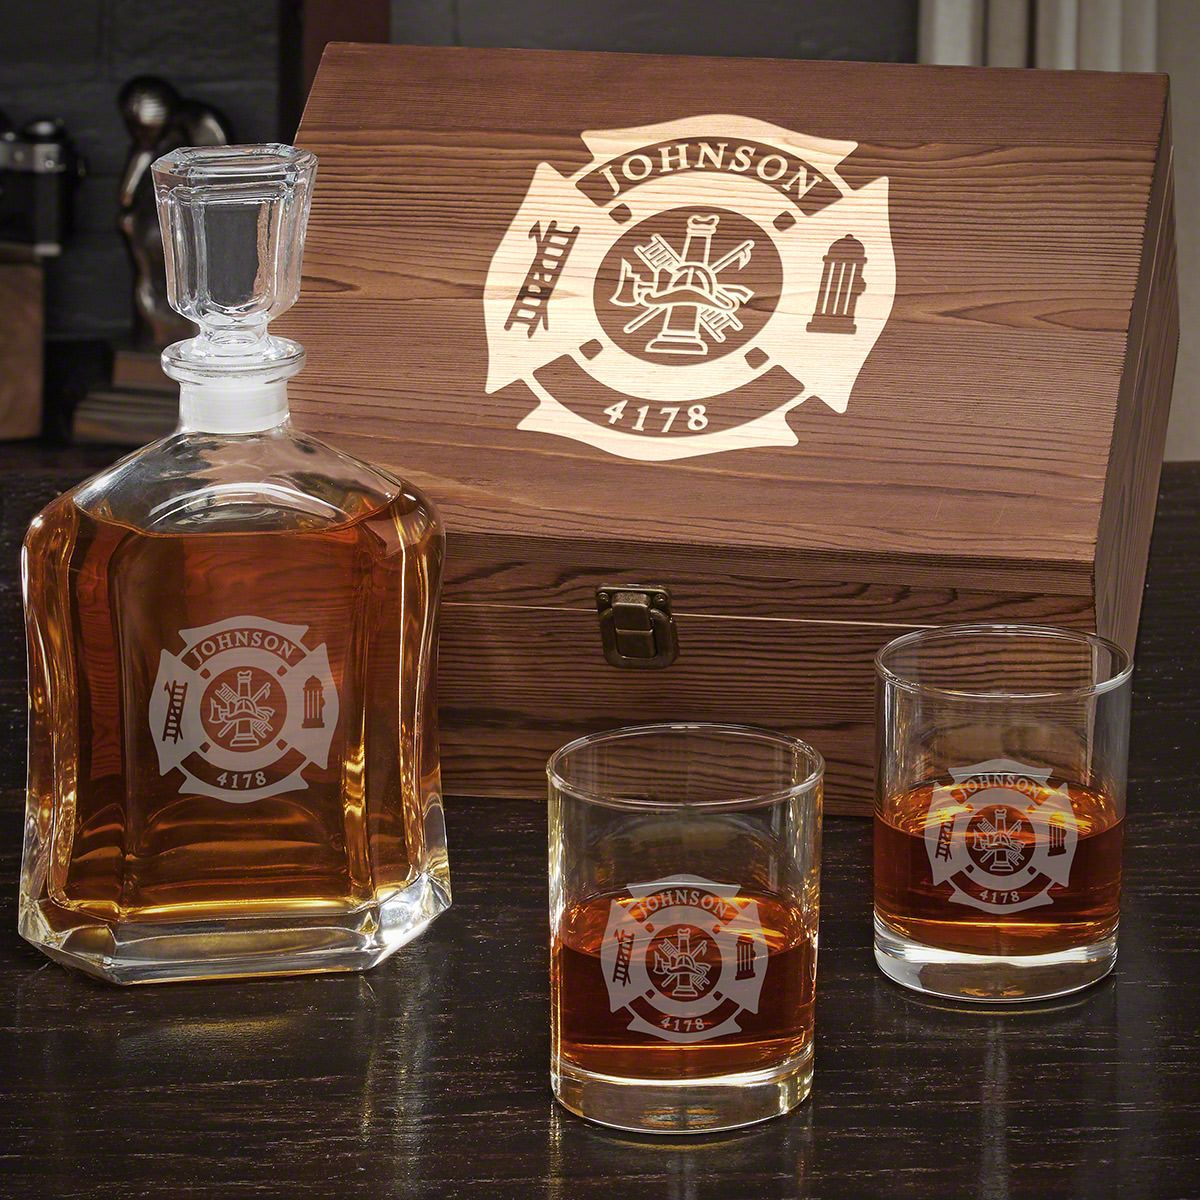 Fire and Rescue Personalized Whiskey Gift for Firefighters